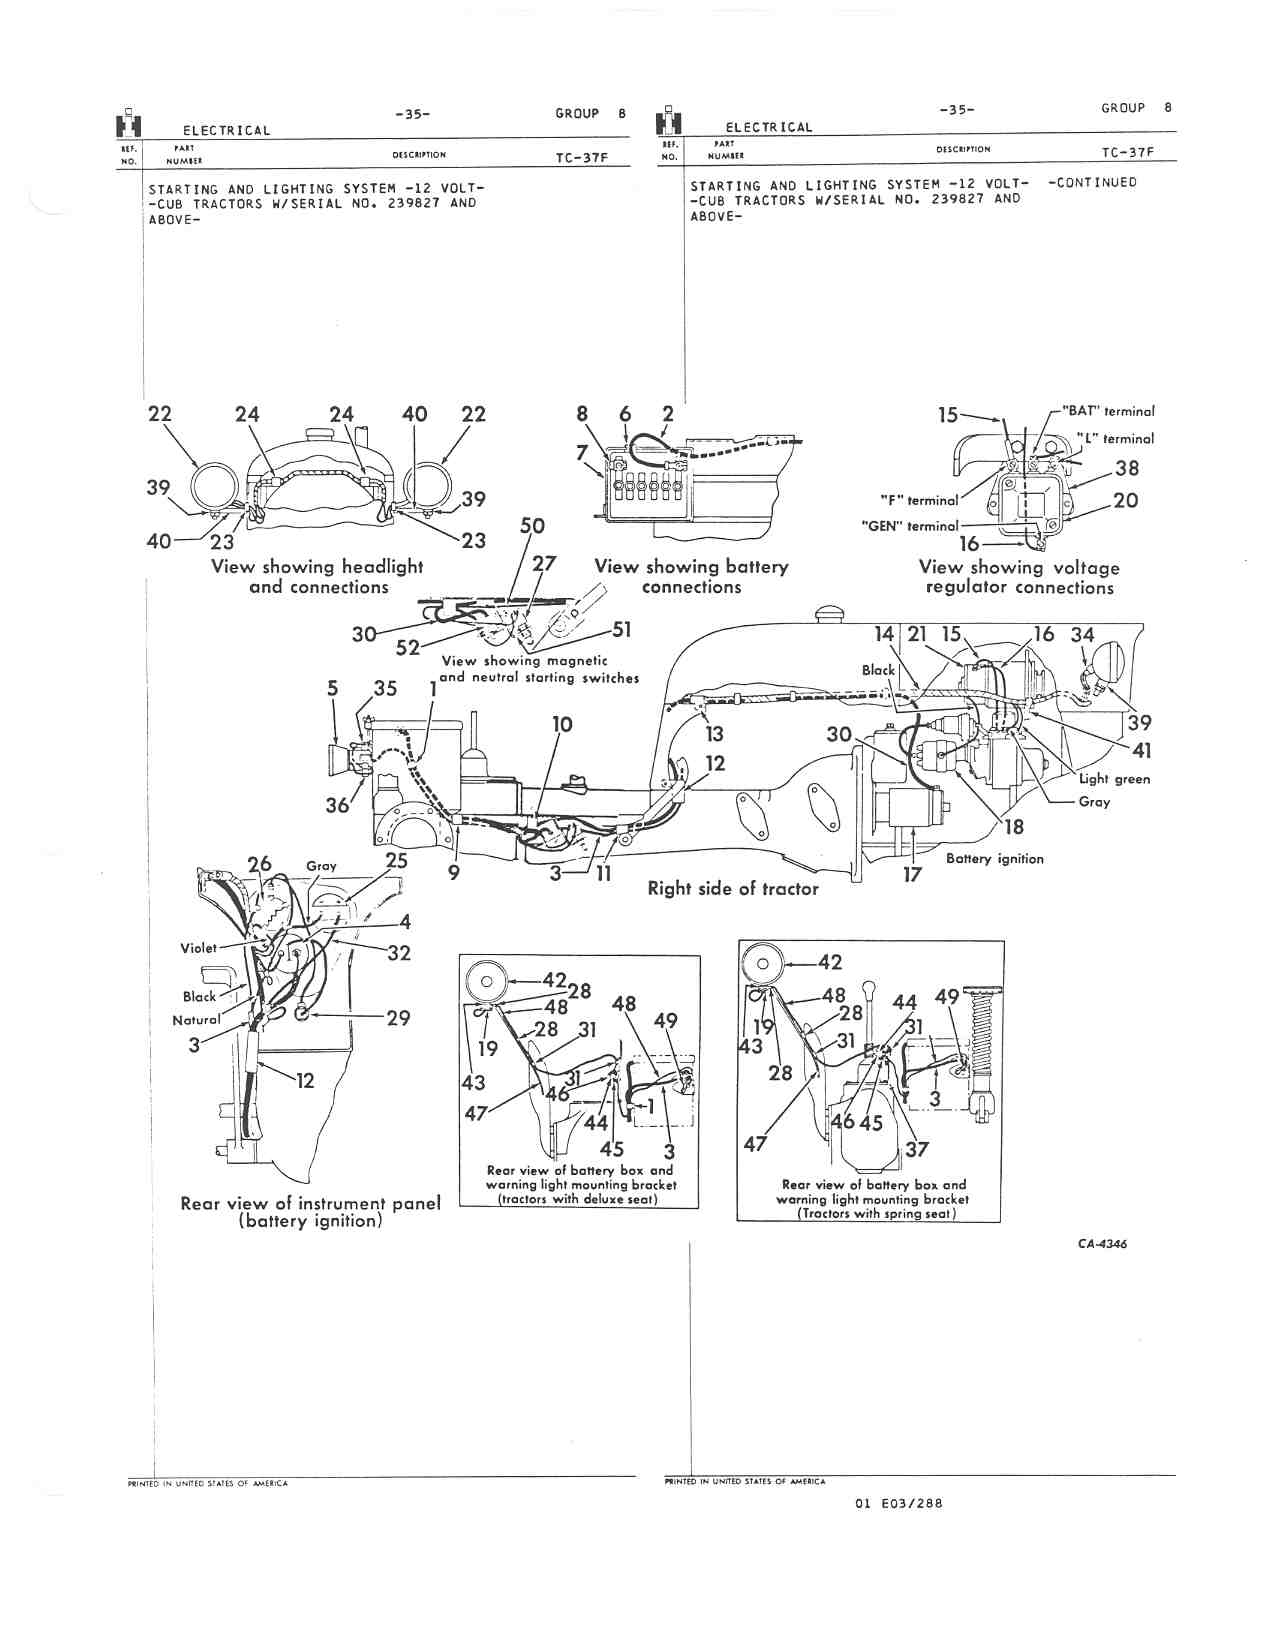 farmall h tractor wiring diagram further m with 450 International Tractor Wiring Diagram on 756 Farmall Electrical Diagram also Allis Chalmers Lawn Mower Wiring Diagram likewise Farmall Cub Wiring Diagram Headlight in addition Farmall H Carb Diagram moreover Ih 574 Wiring Circuit Diagram.